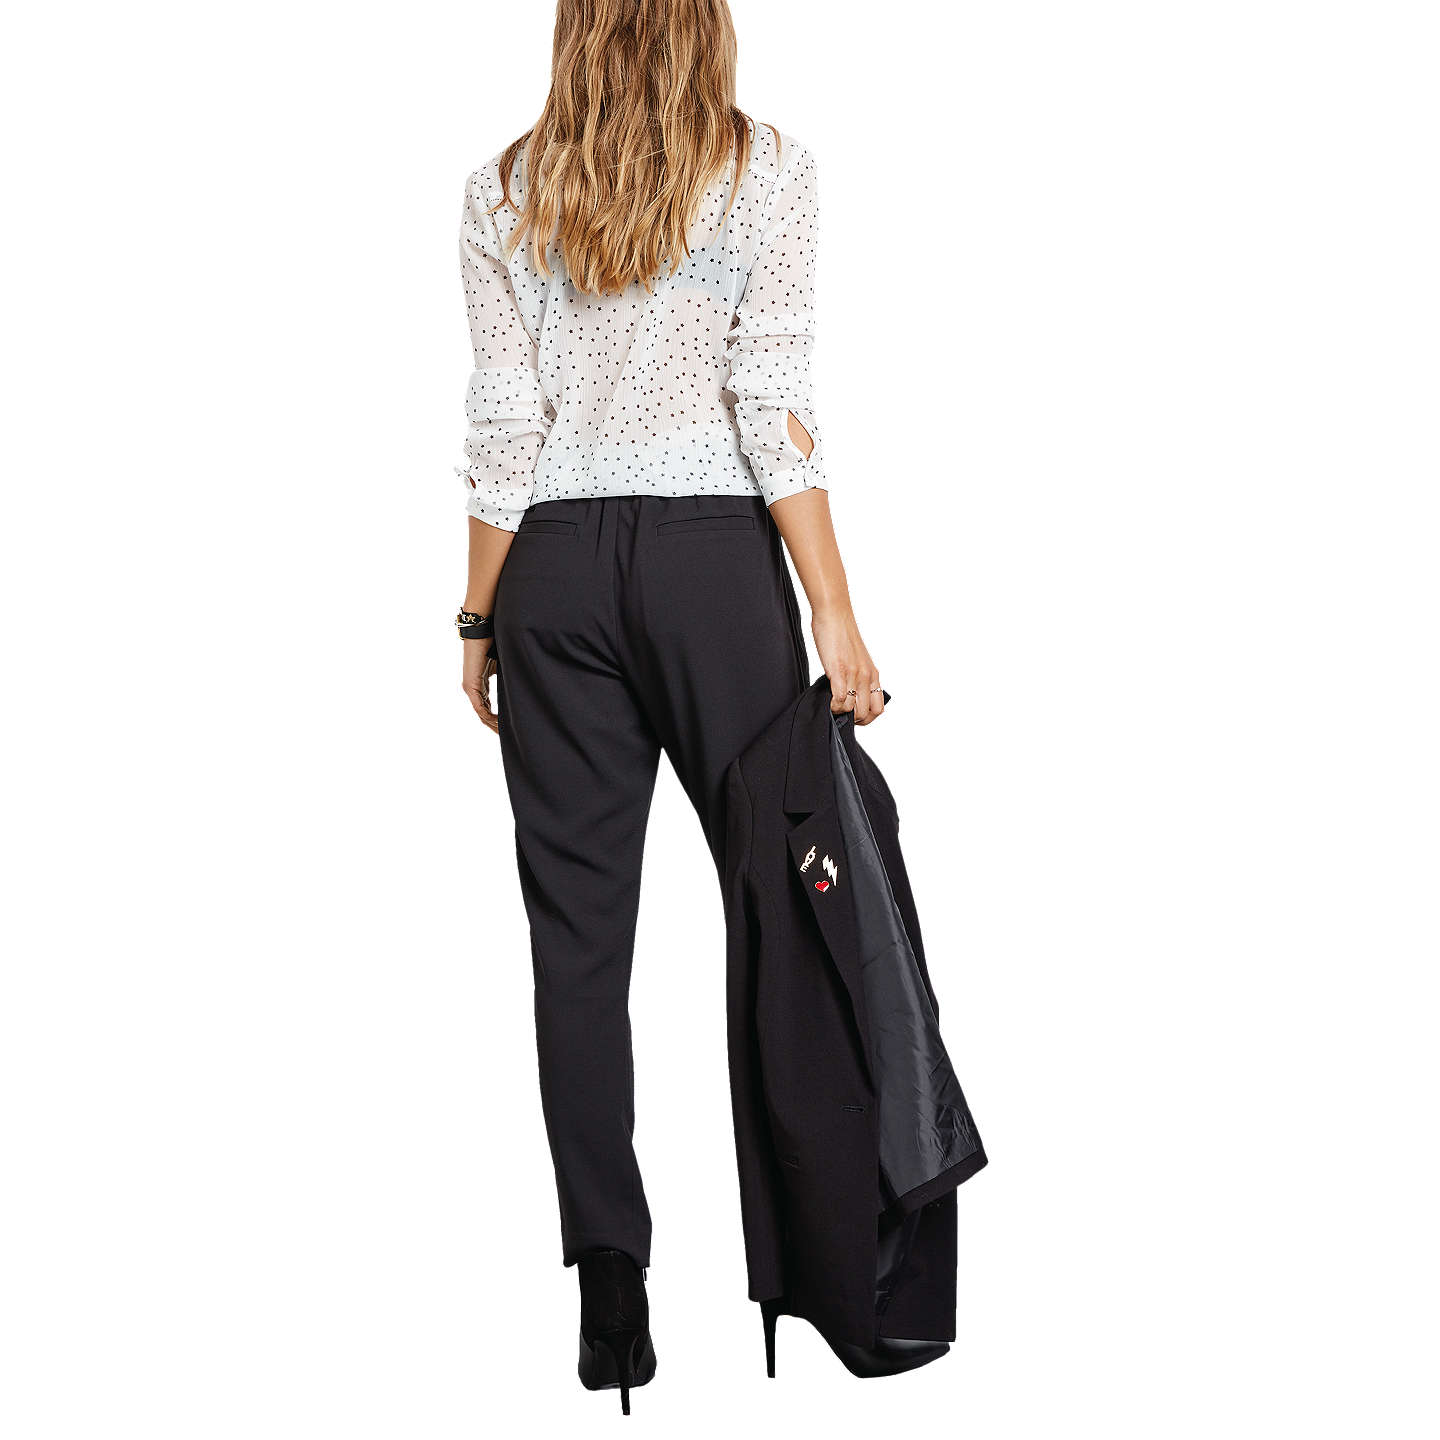 Buyhush Winona Trousers, Black, 6 Online at johnlewis.com